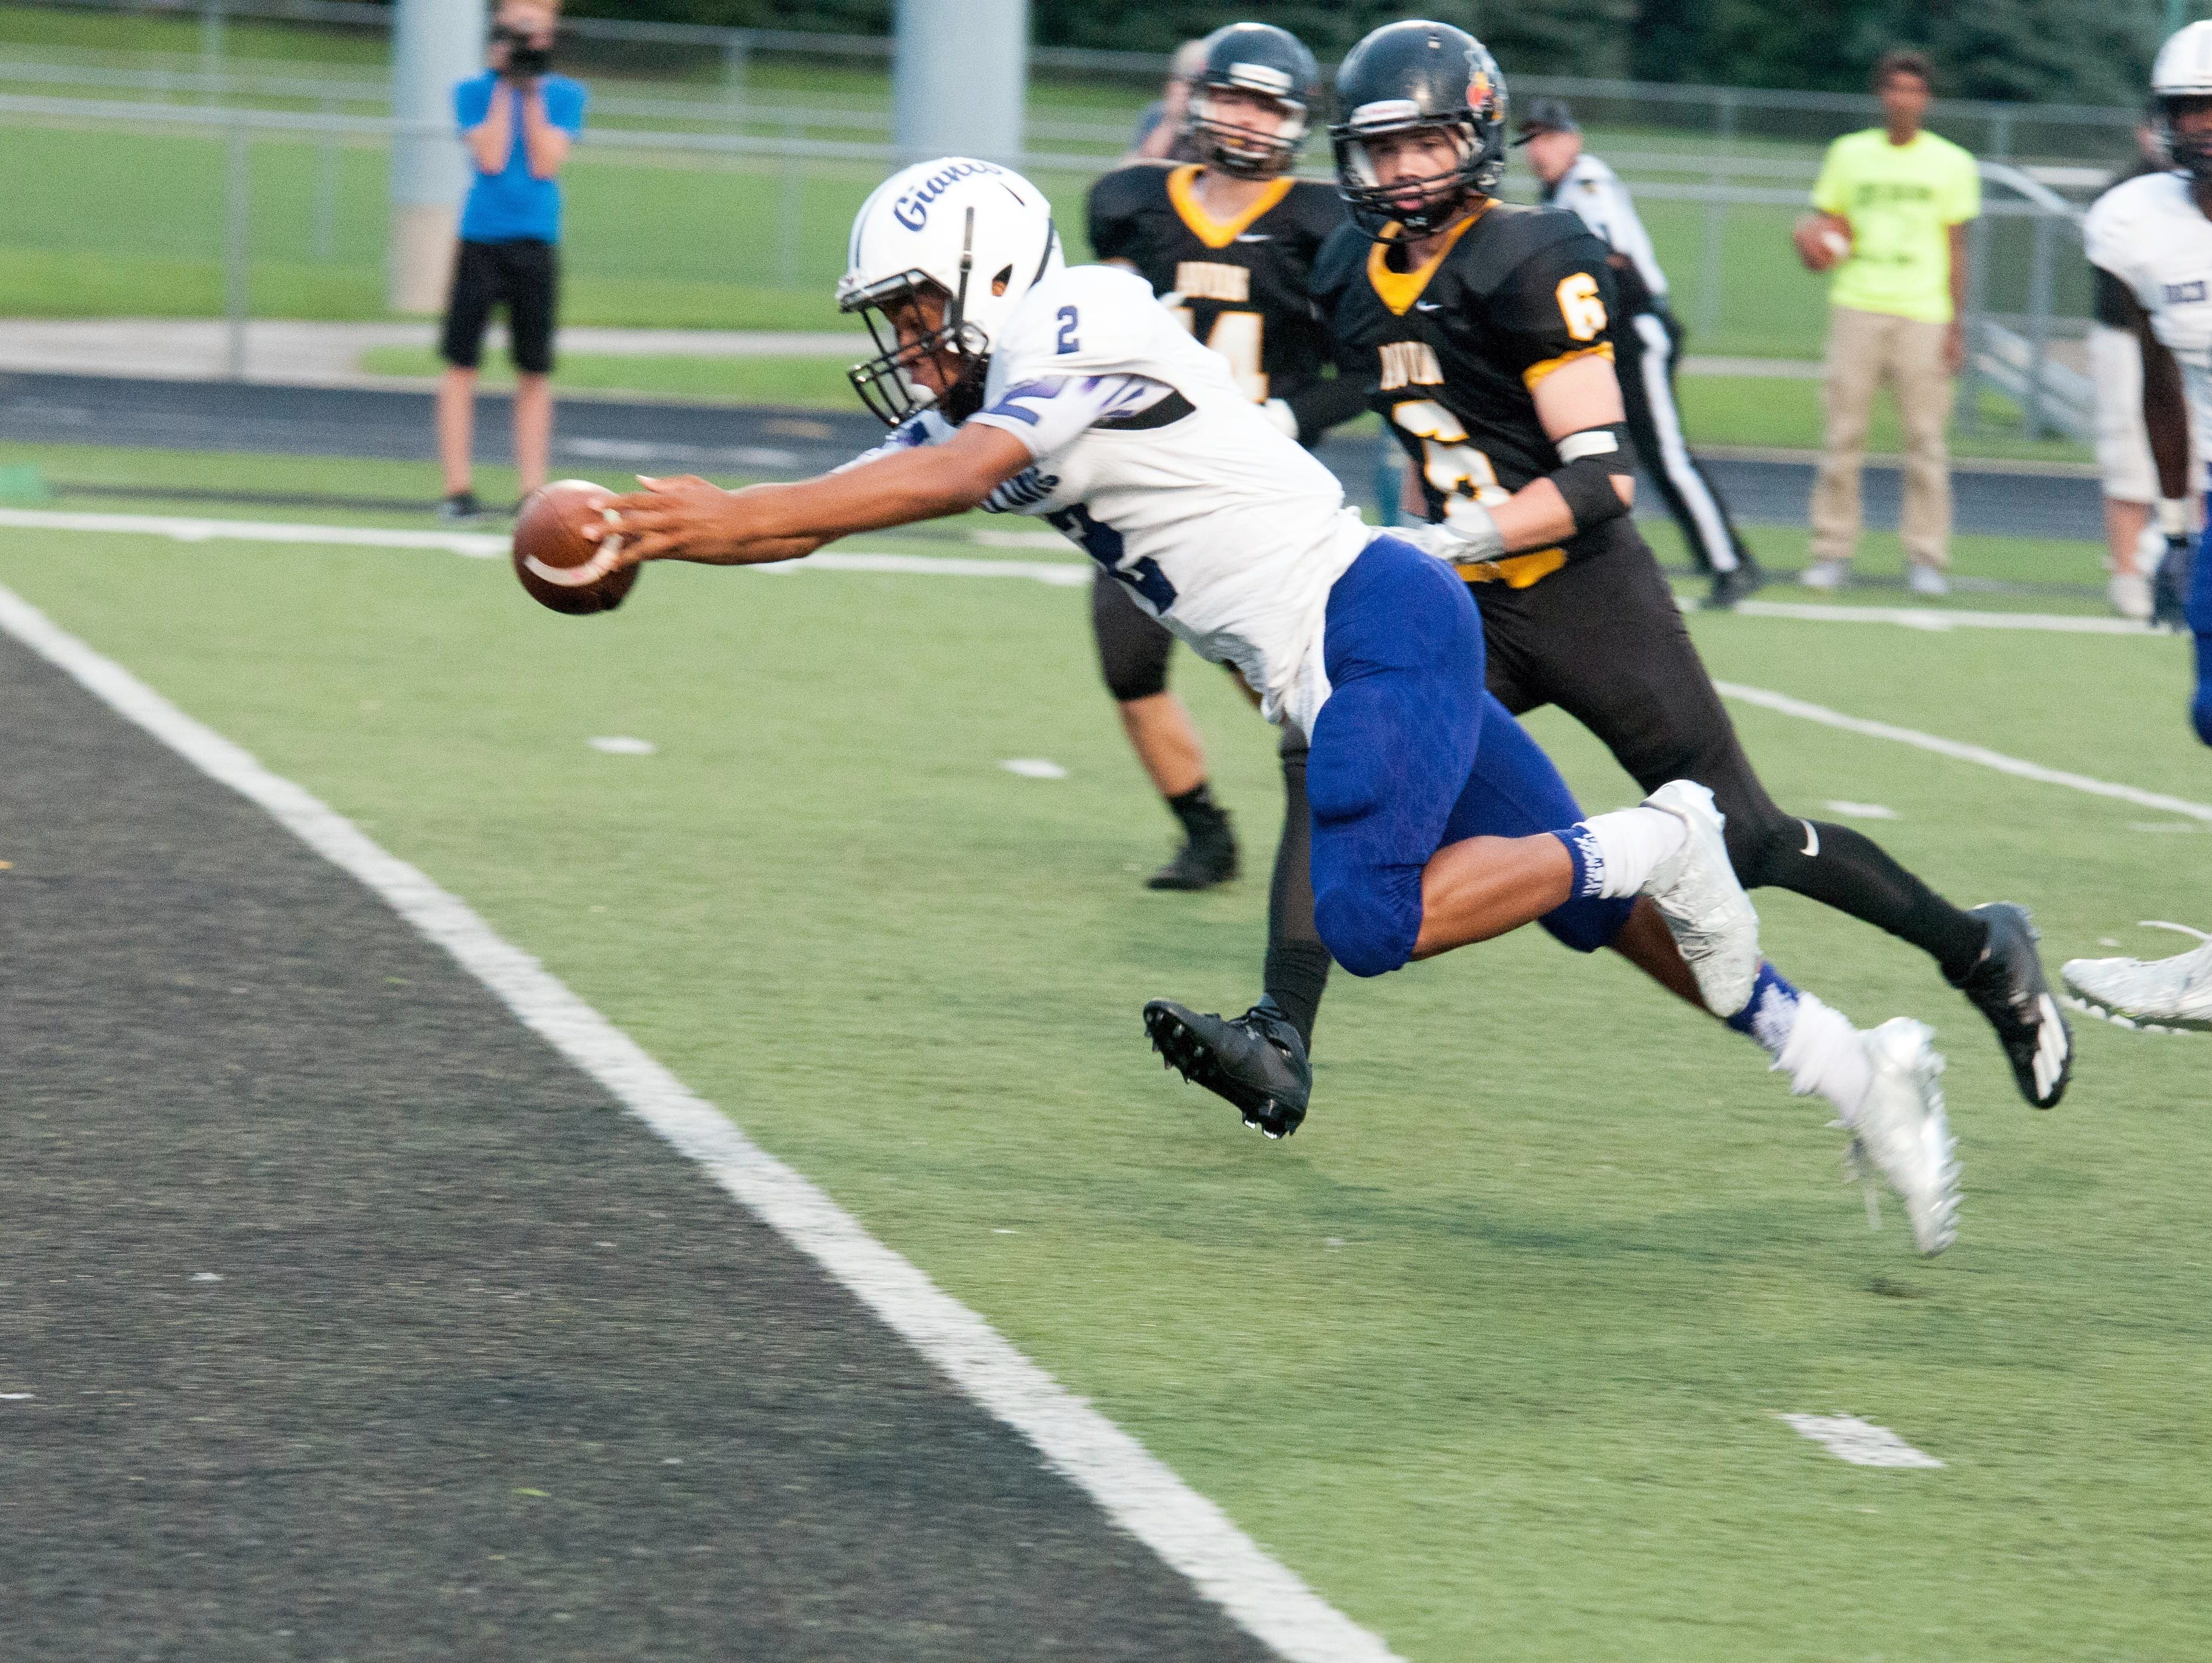 Ben Davis' Reese Taylor reaches out for the goal line in the Giants' lopsided win over Avon Friday night.